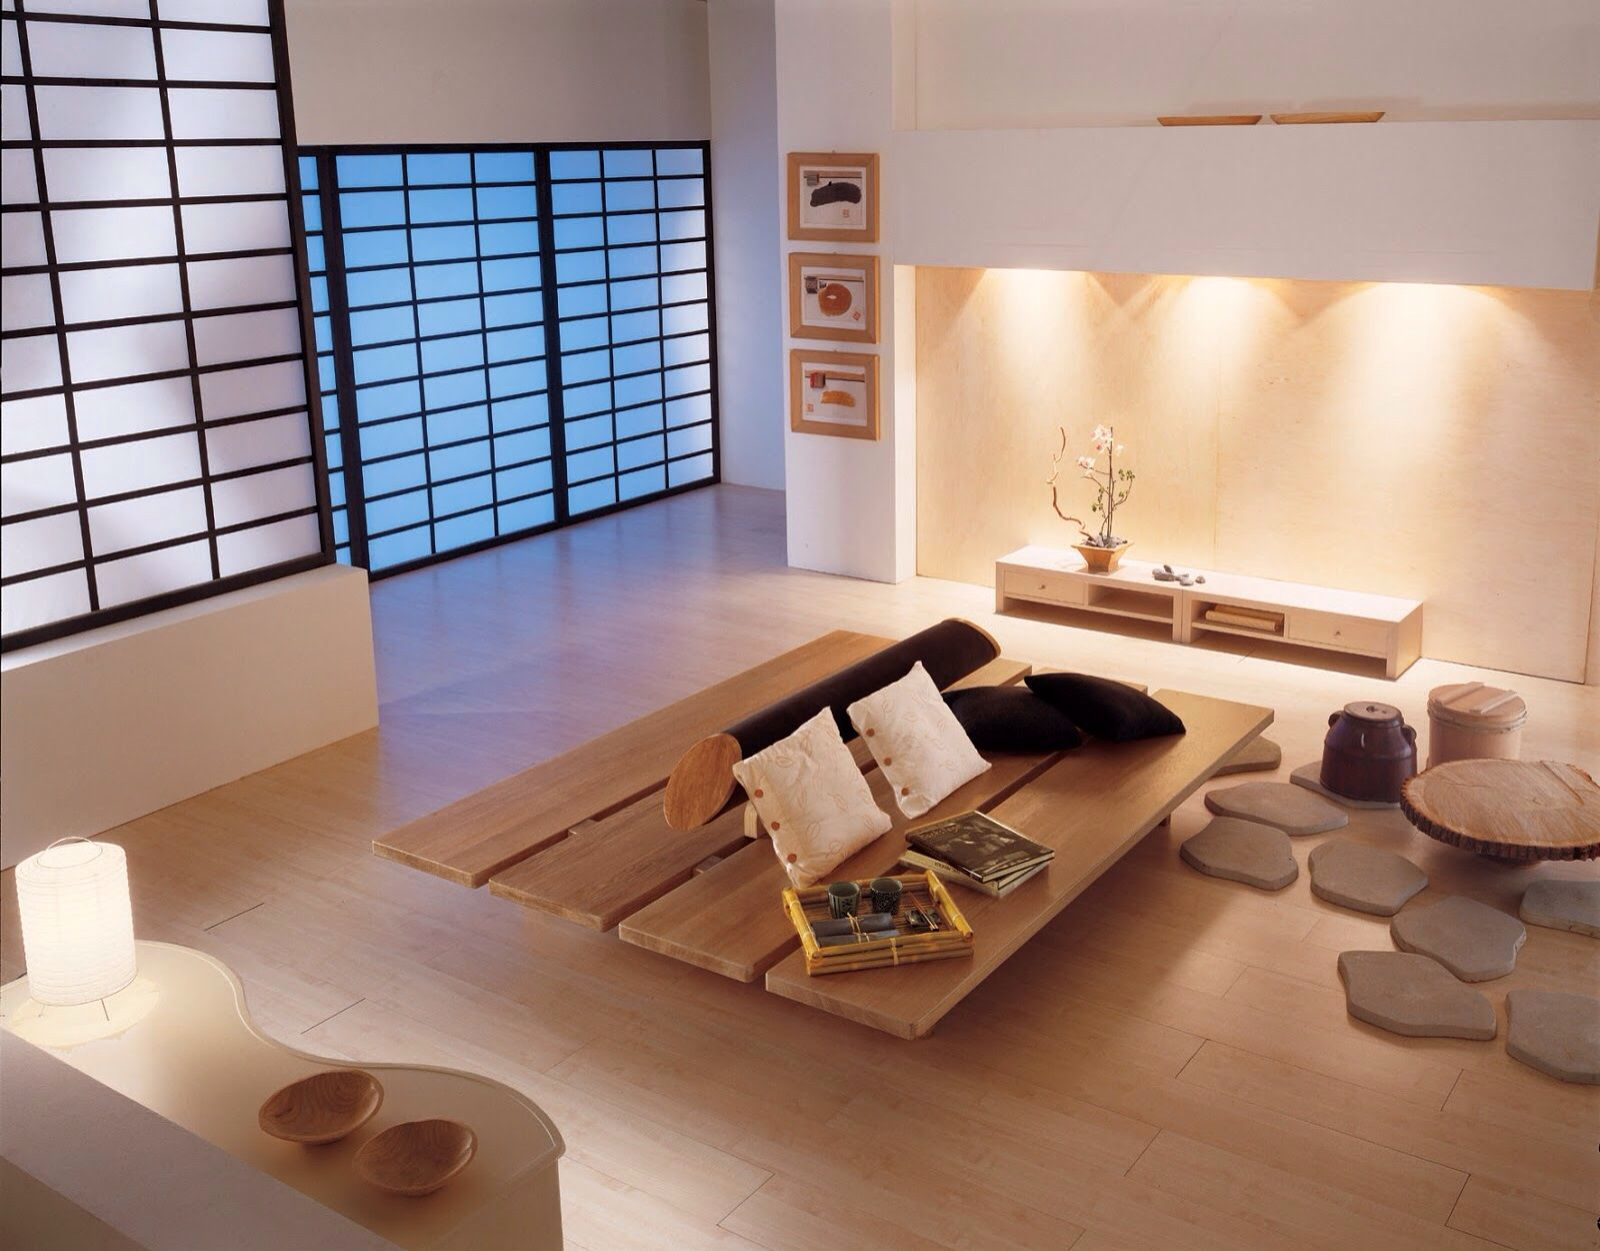 11 magnificent zen interior design ideas | zen interiors, japanese